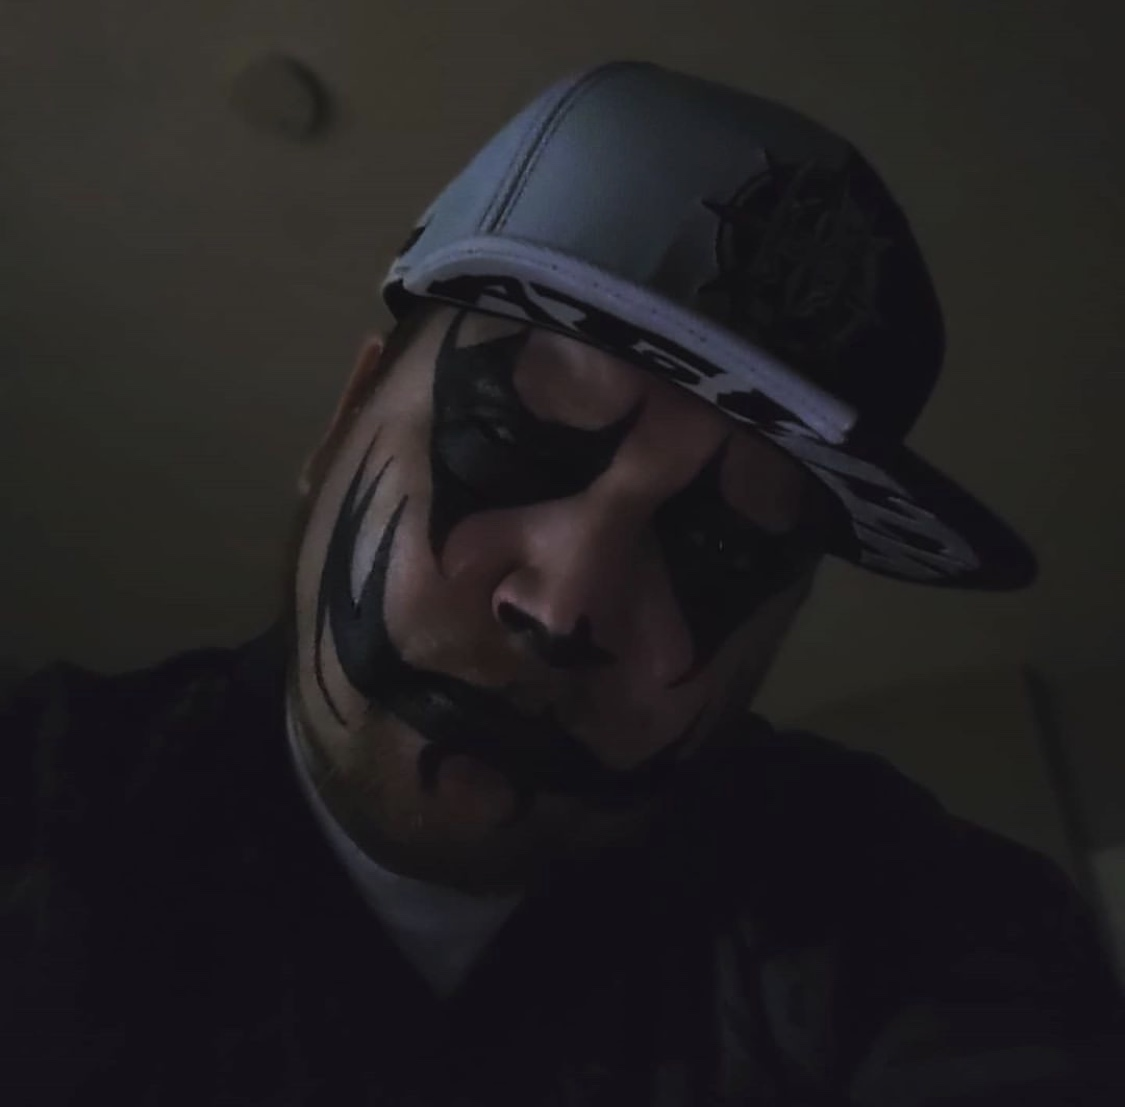 Who's ready for some new music from Boondox The Scarecrow ? I know we are!!! #MajikNinjaAustralia #Boondox #Underground #TheScarecrowpic.twitter.com/KK28Agh0ka